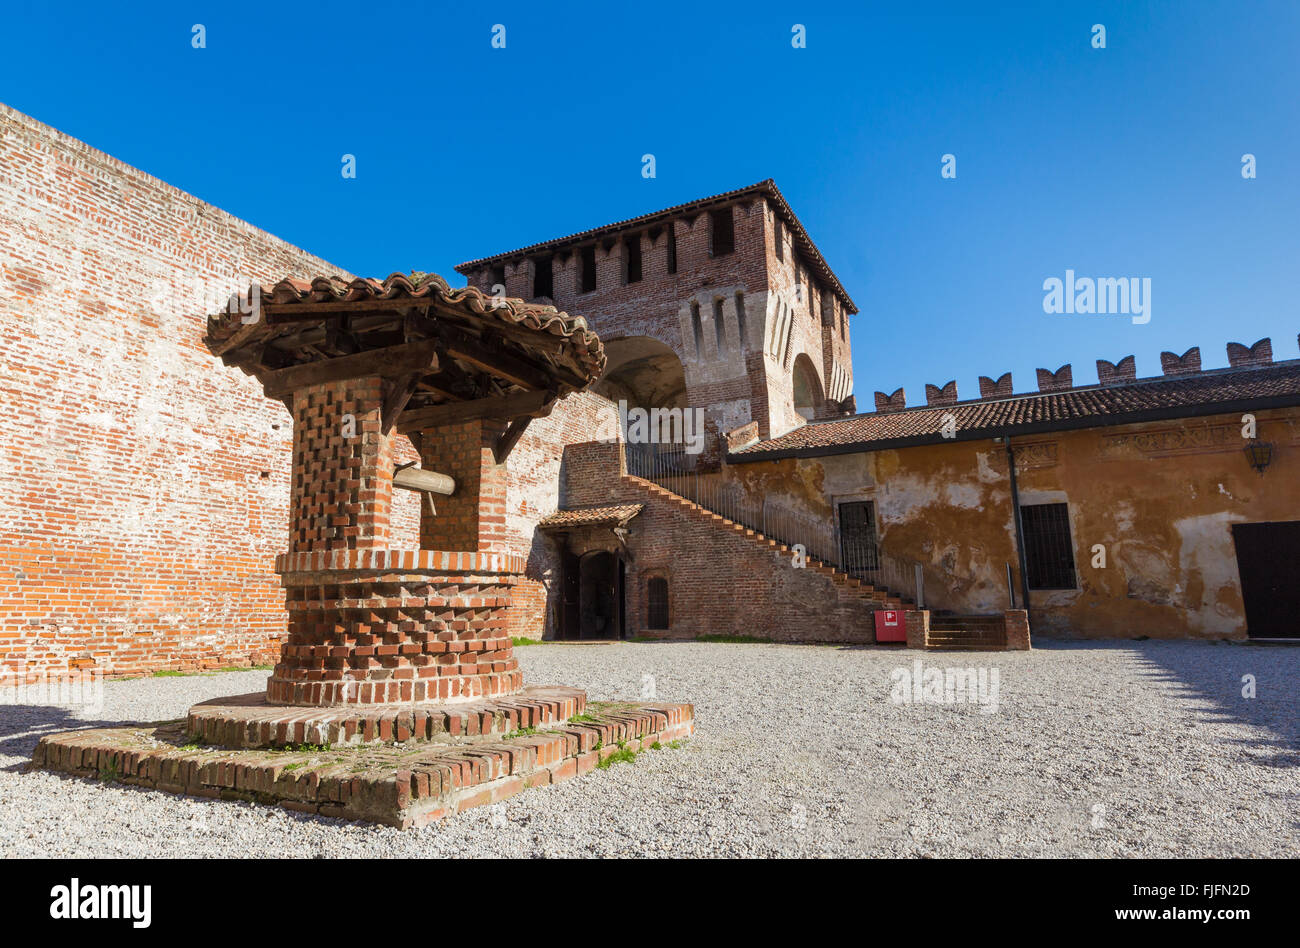 medieval castle of Soncino in the province of Cremona near Milan, Italy - Stock Image